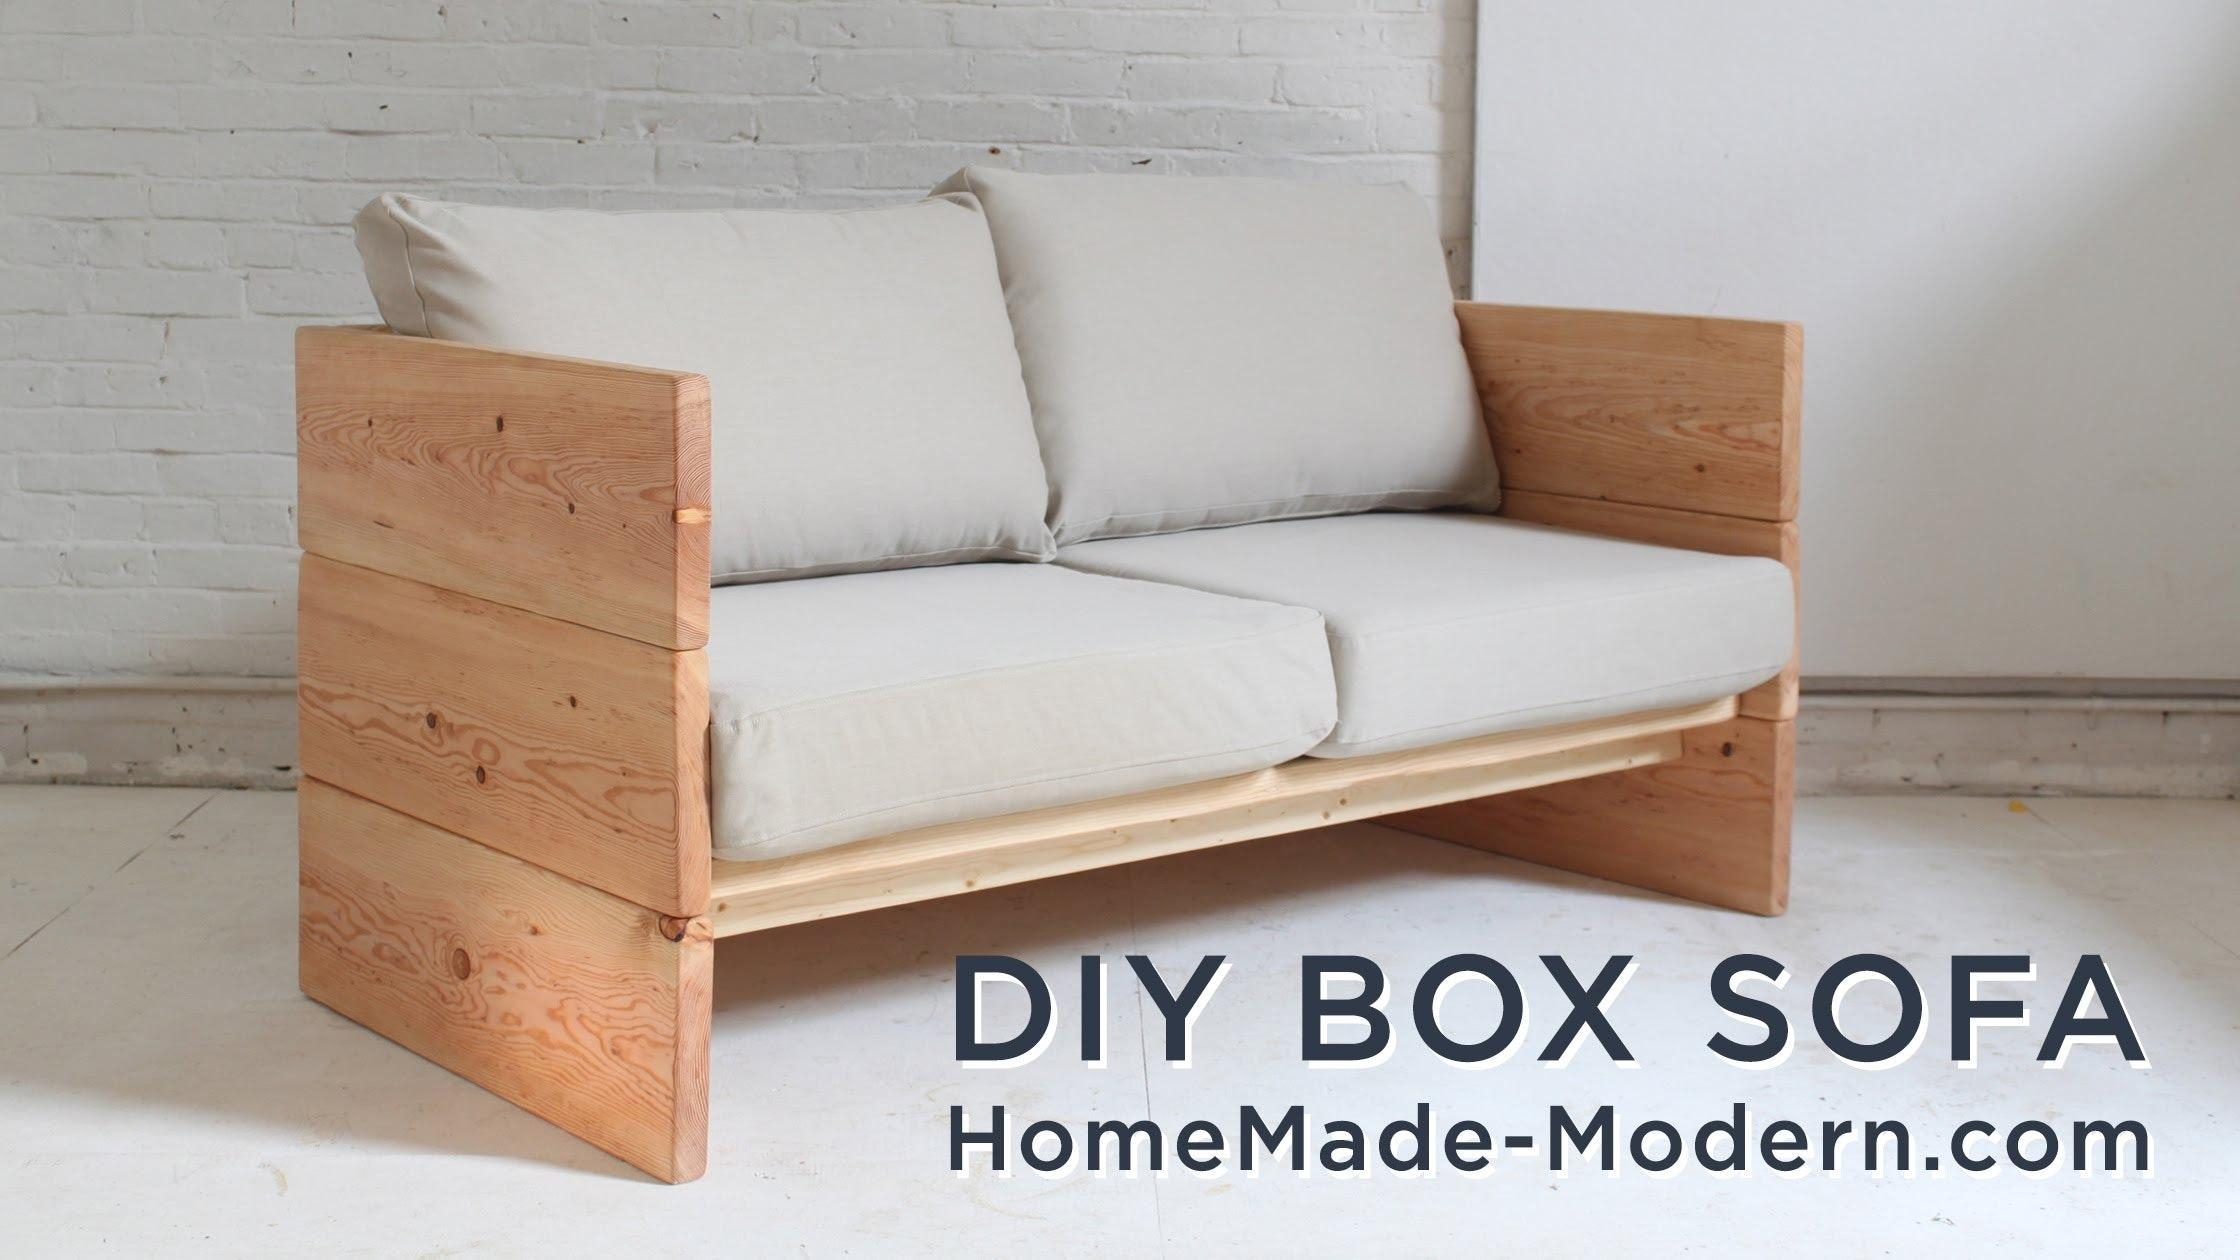 Easy Wood Bench Plans Diy Daybed To Build Pics On Charming Simple Regarding Diy Sectional Sofa Frame Plans (View 10 of 15)